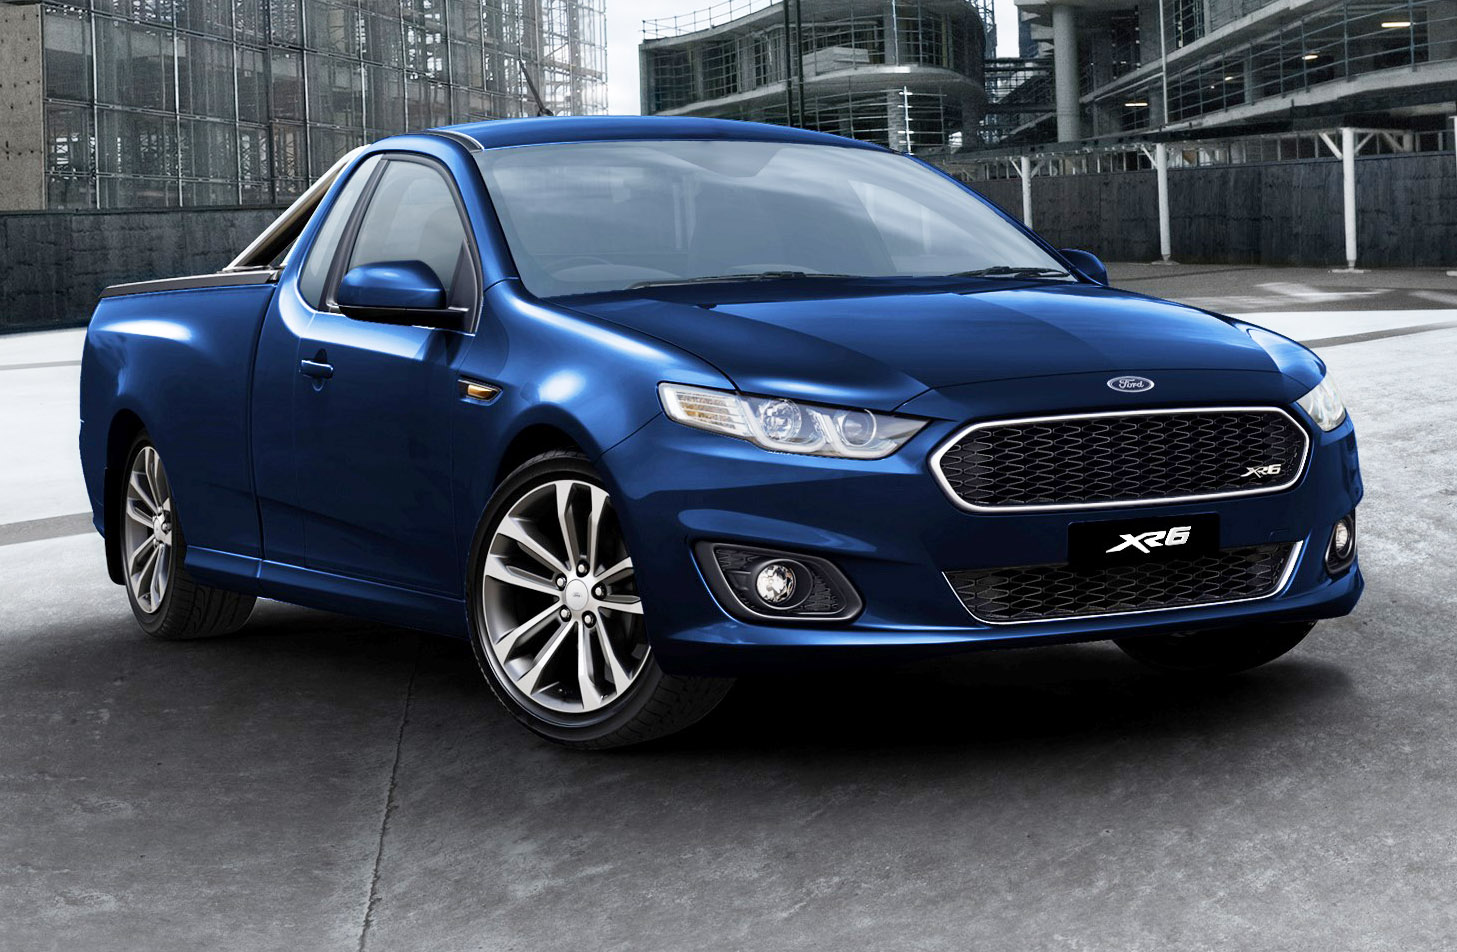 2015 Ford Falcon Ute: Price And Features For 'FG X' Utility Range